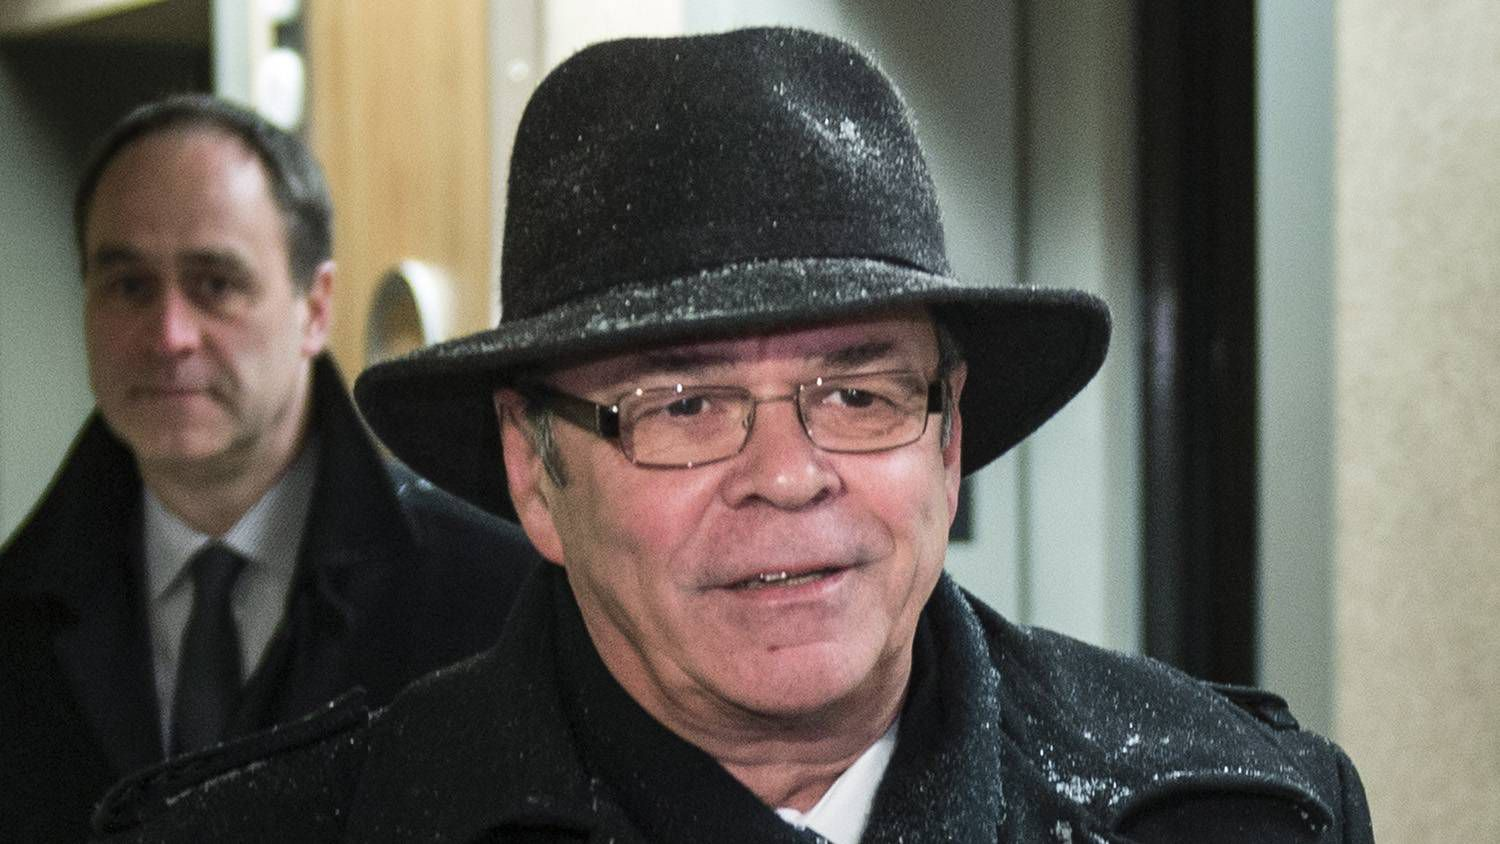 Wiretaps paint picture of Accurso holding sway over Quebec union